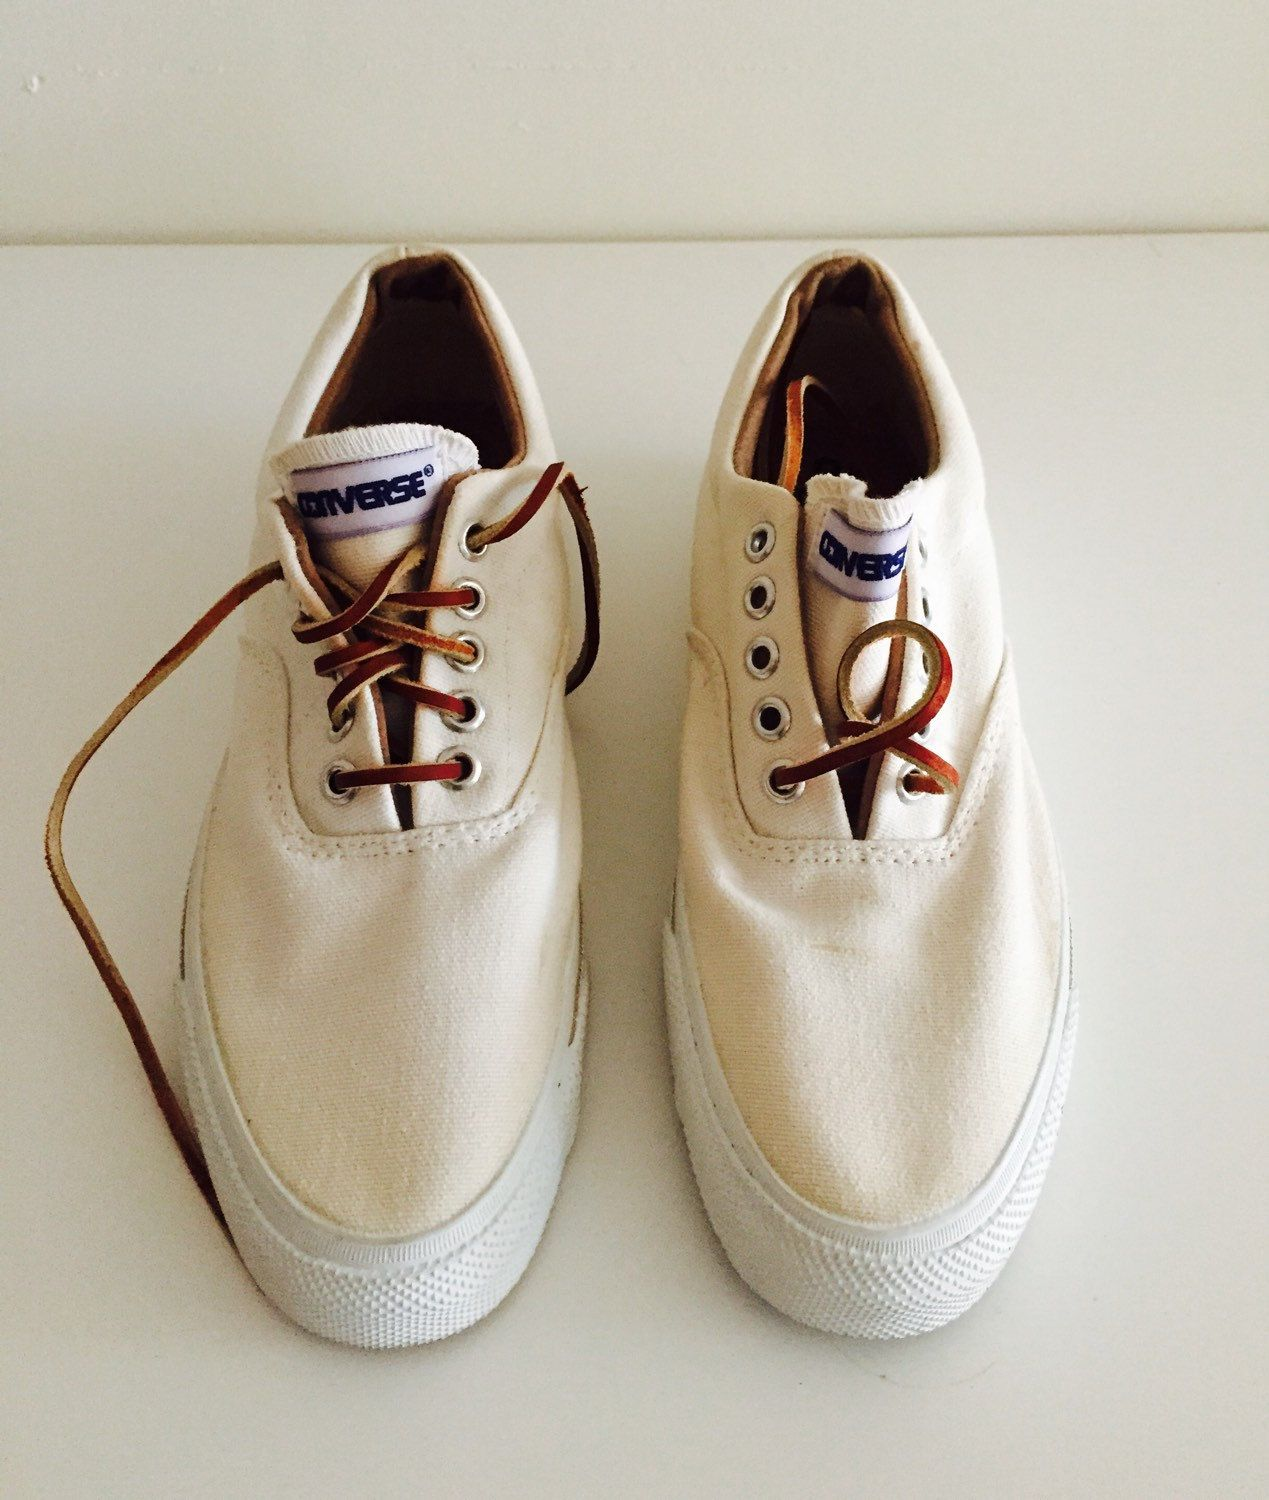 be576e6920ff Vintage 80s Converse skid grip canvas shoes tennis leather laces preppy  rare unworn new by 216vintageModern on Etsy